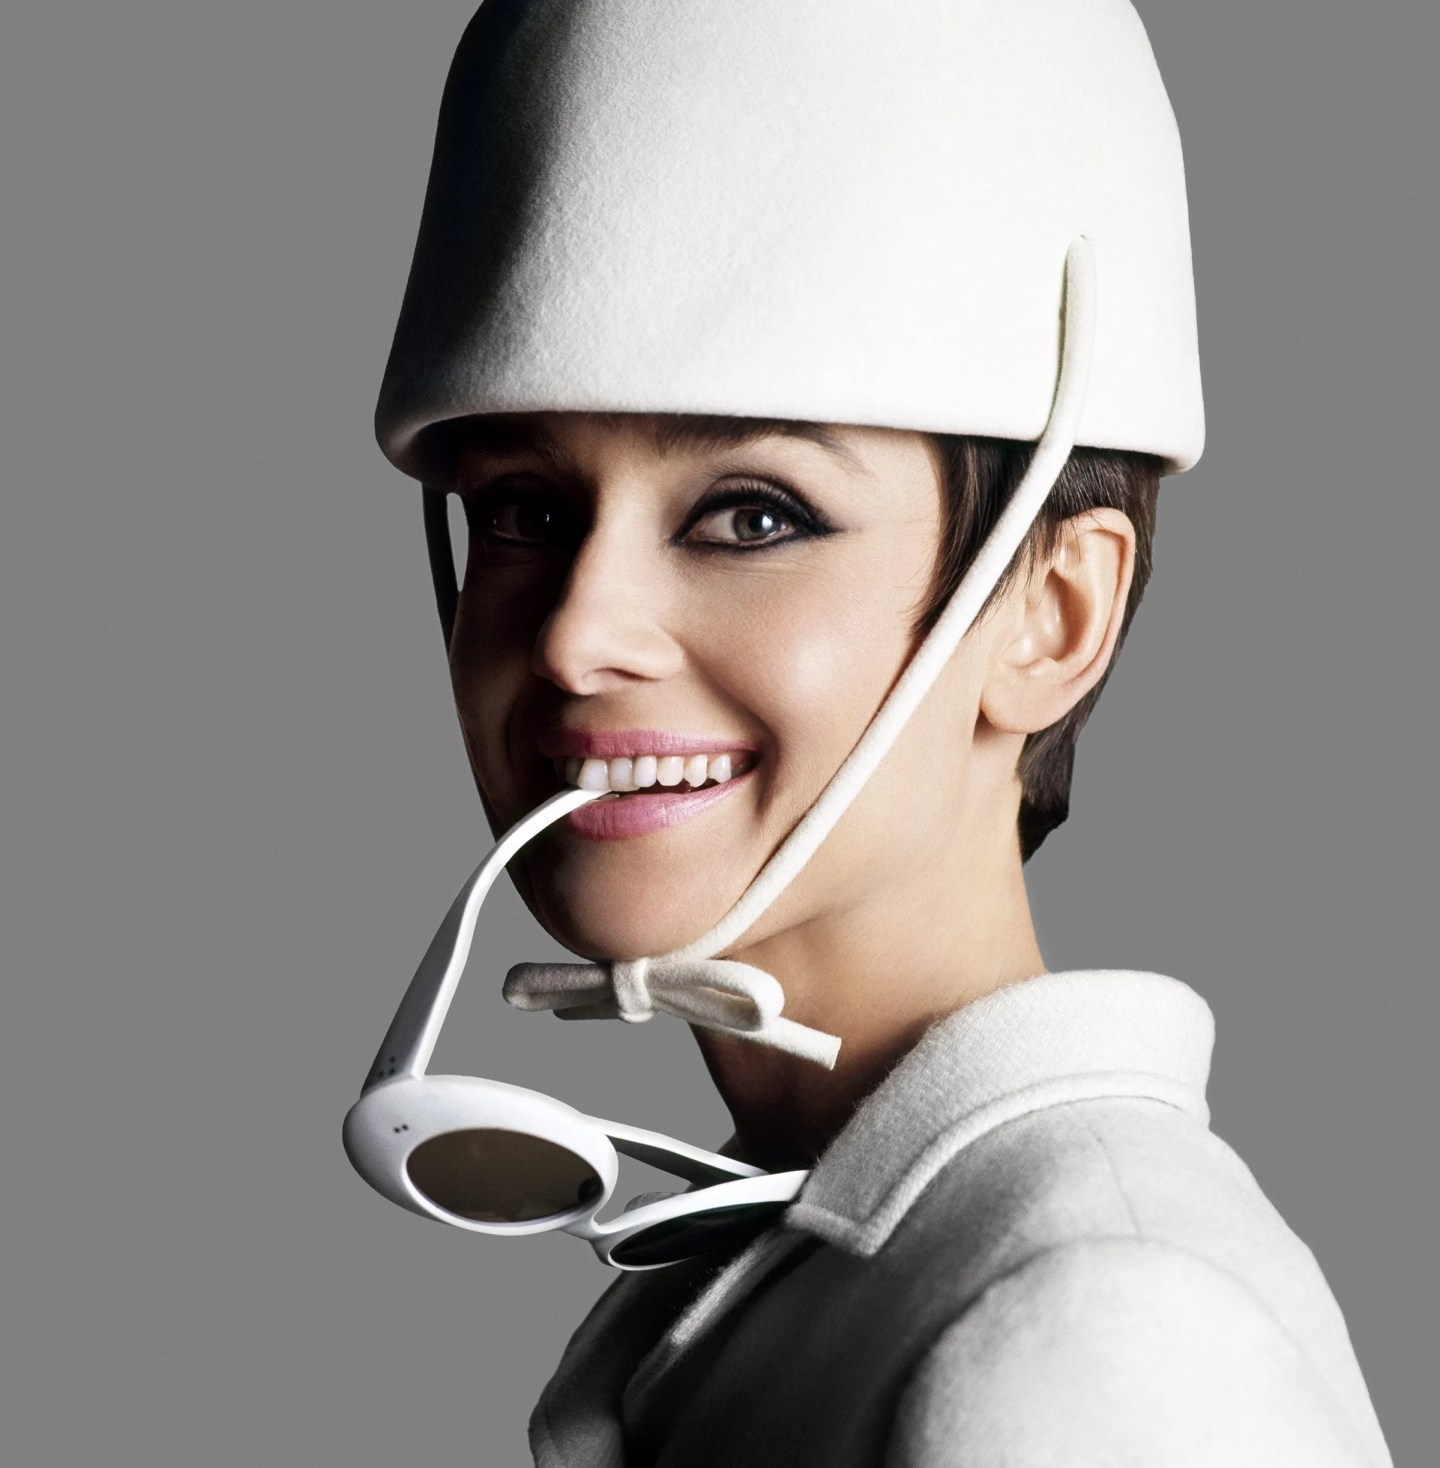 Audrey Hepburn dressed in Givenchy with sunglasses by Oliver Goldsmith by Douglas Kirkland, 1966 ©Iconic Images/Douglas Kirkland